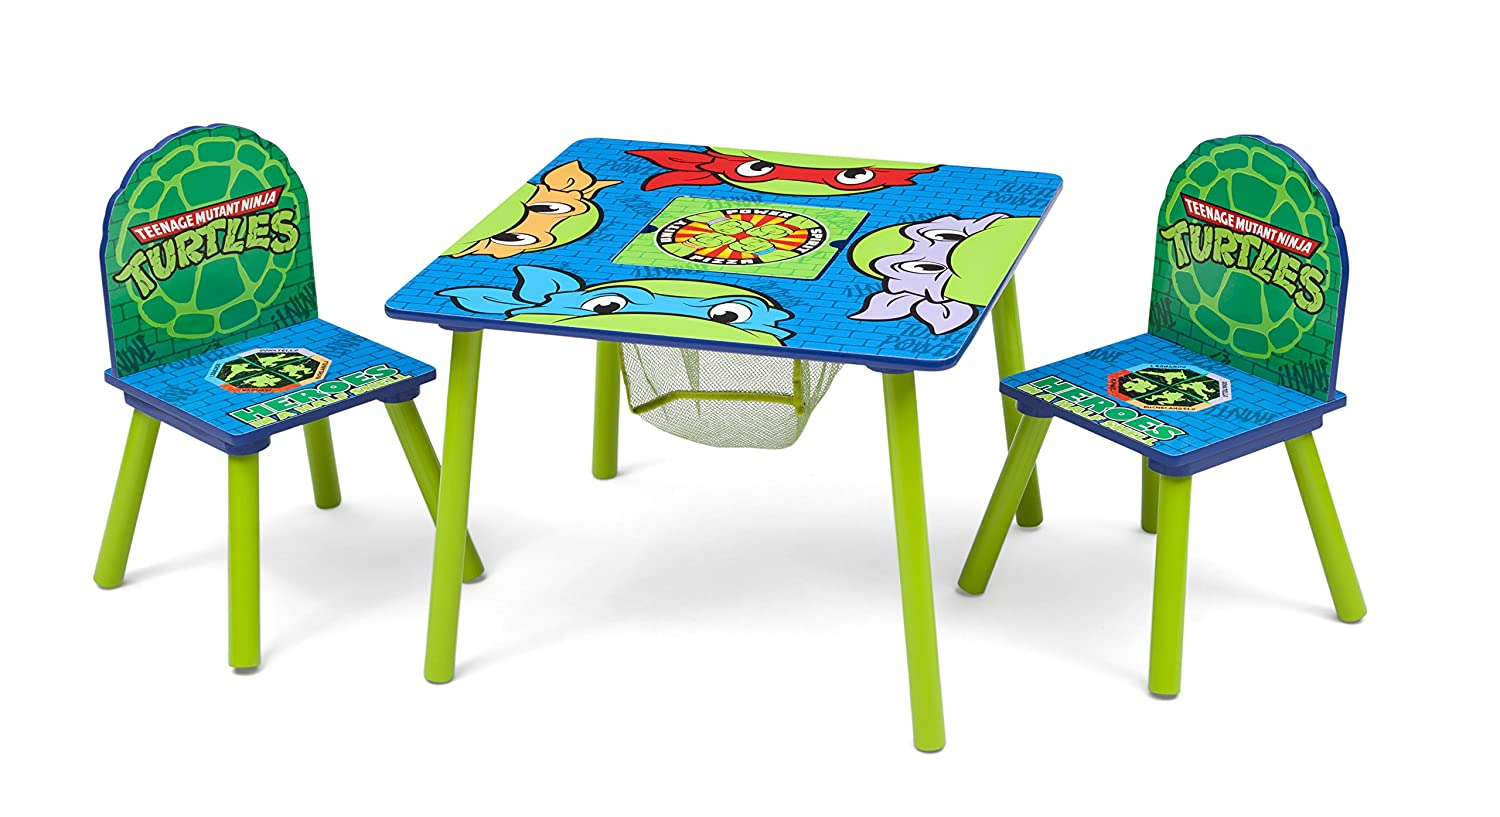 Delta Children Kids Chair Set and Table (2 Chairs Included), Nickelodeon Teenage Mutant Ninja Turtles